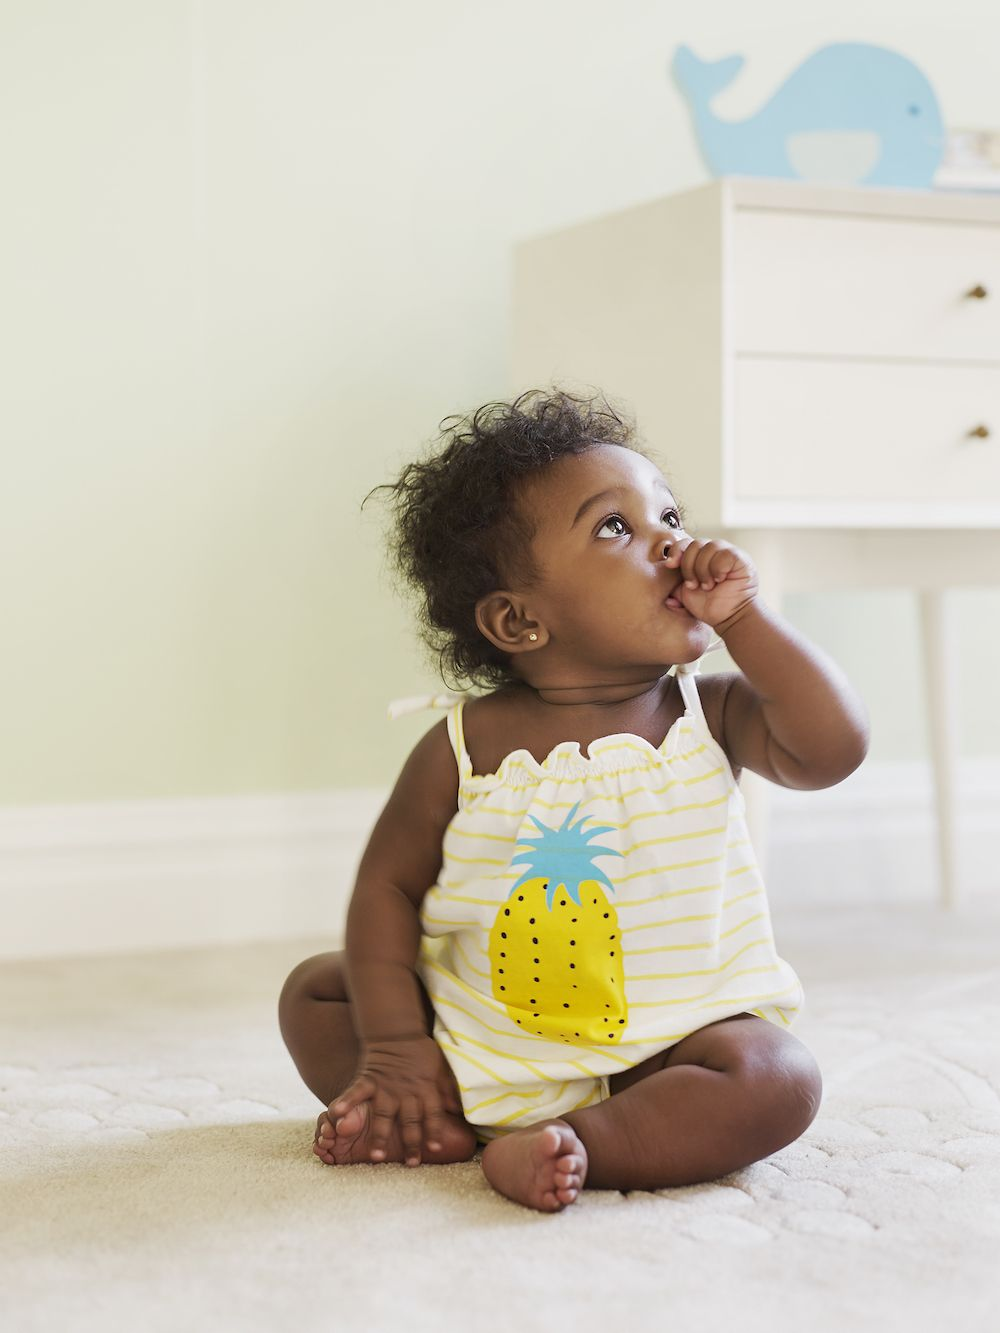 The Most Popular Unconventional Baby Names in Each State